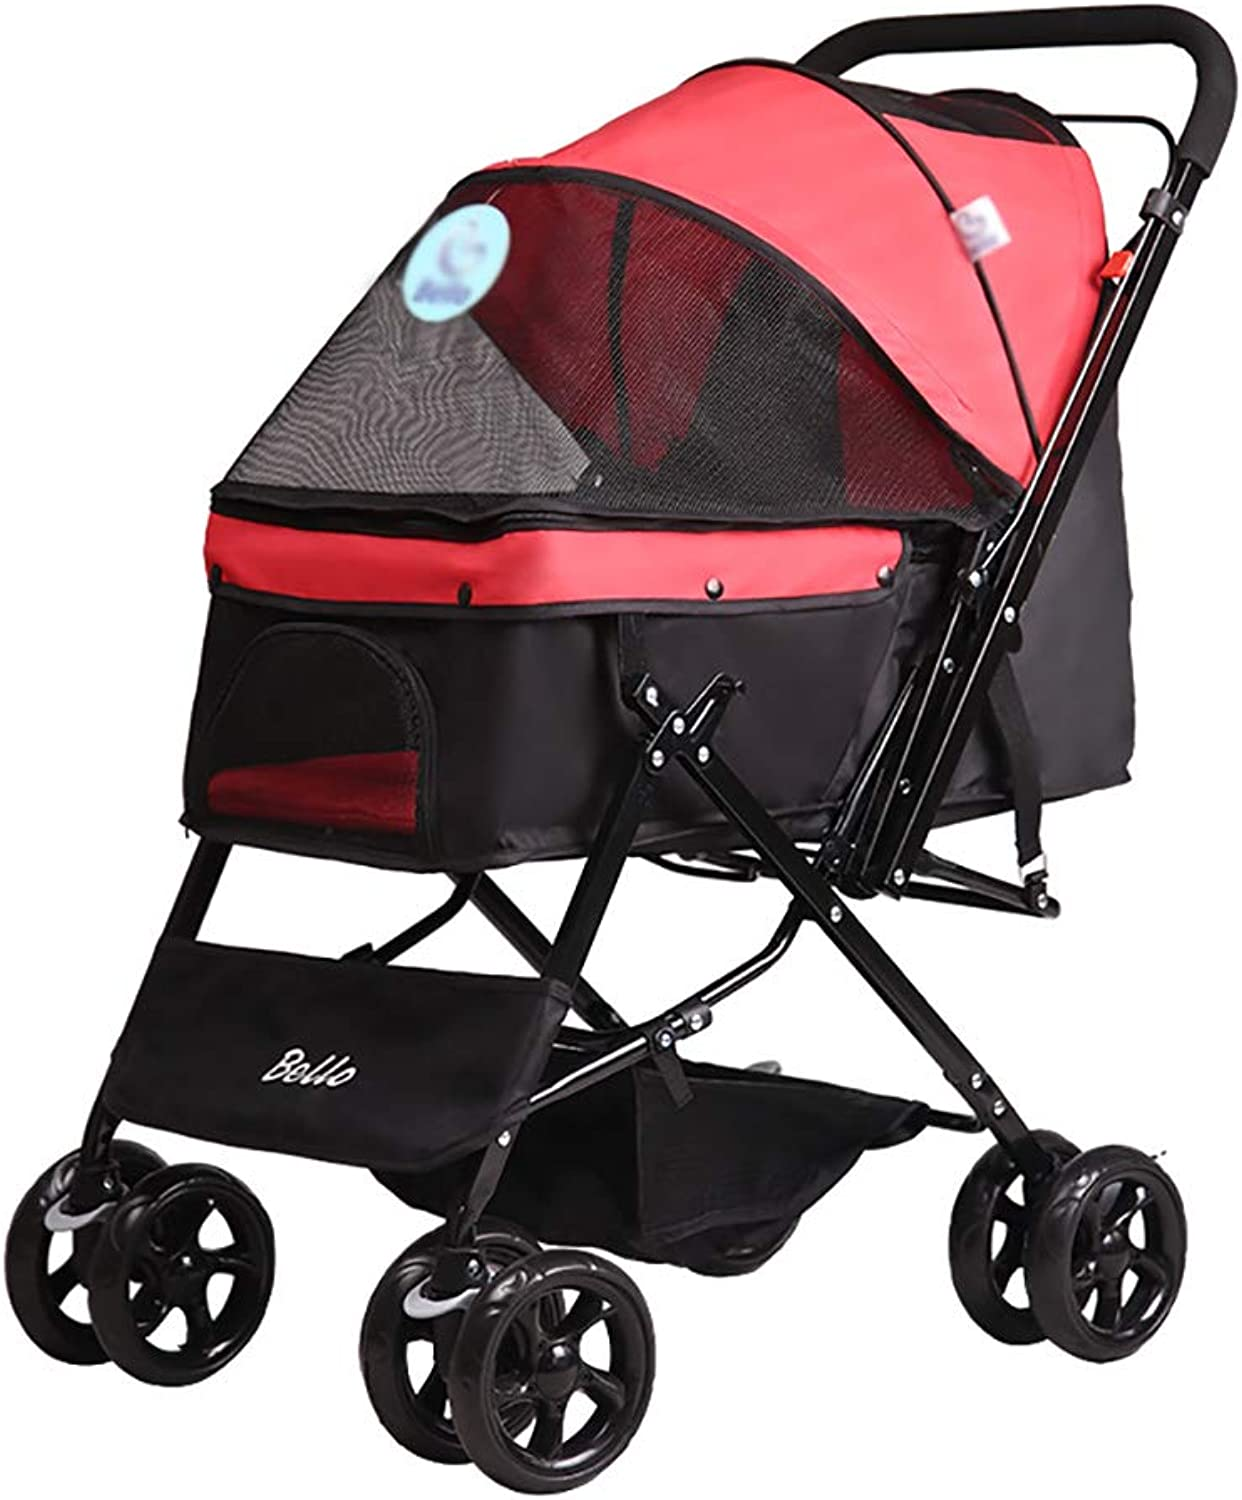 MMM@ Pet Stroller, Foldable Fourwheeled Trolley Suspension Commutation Cat and Dog Cart Large Travel Supplies trolley (color   RED)